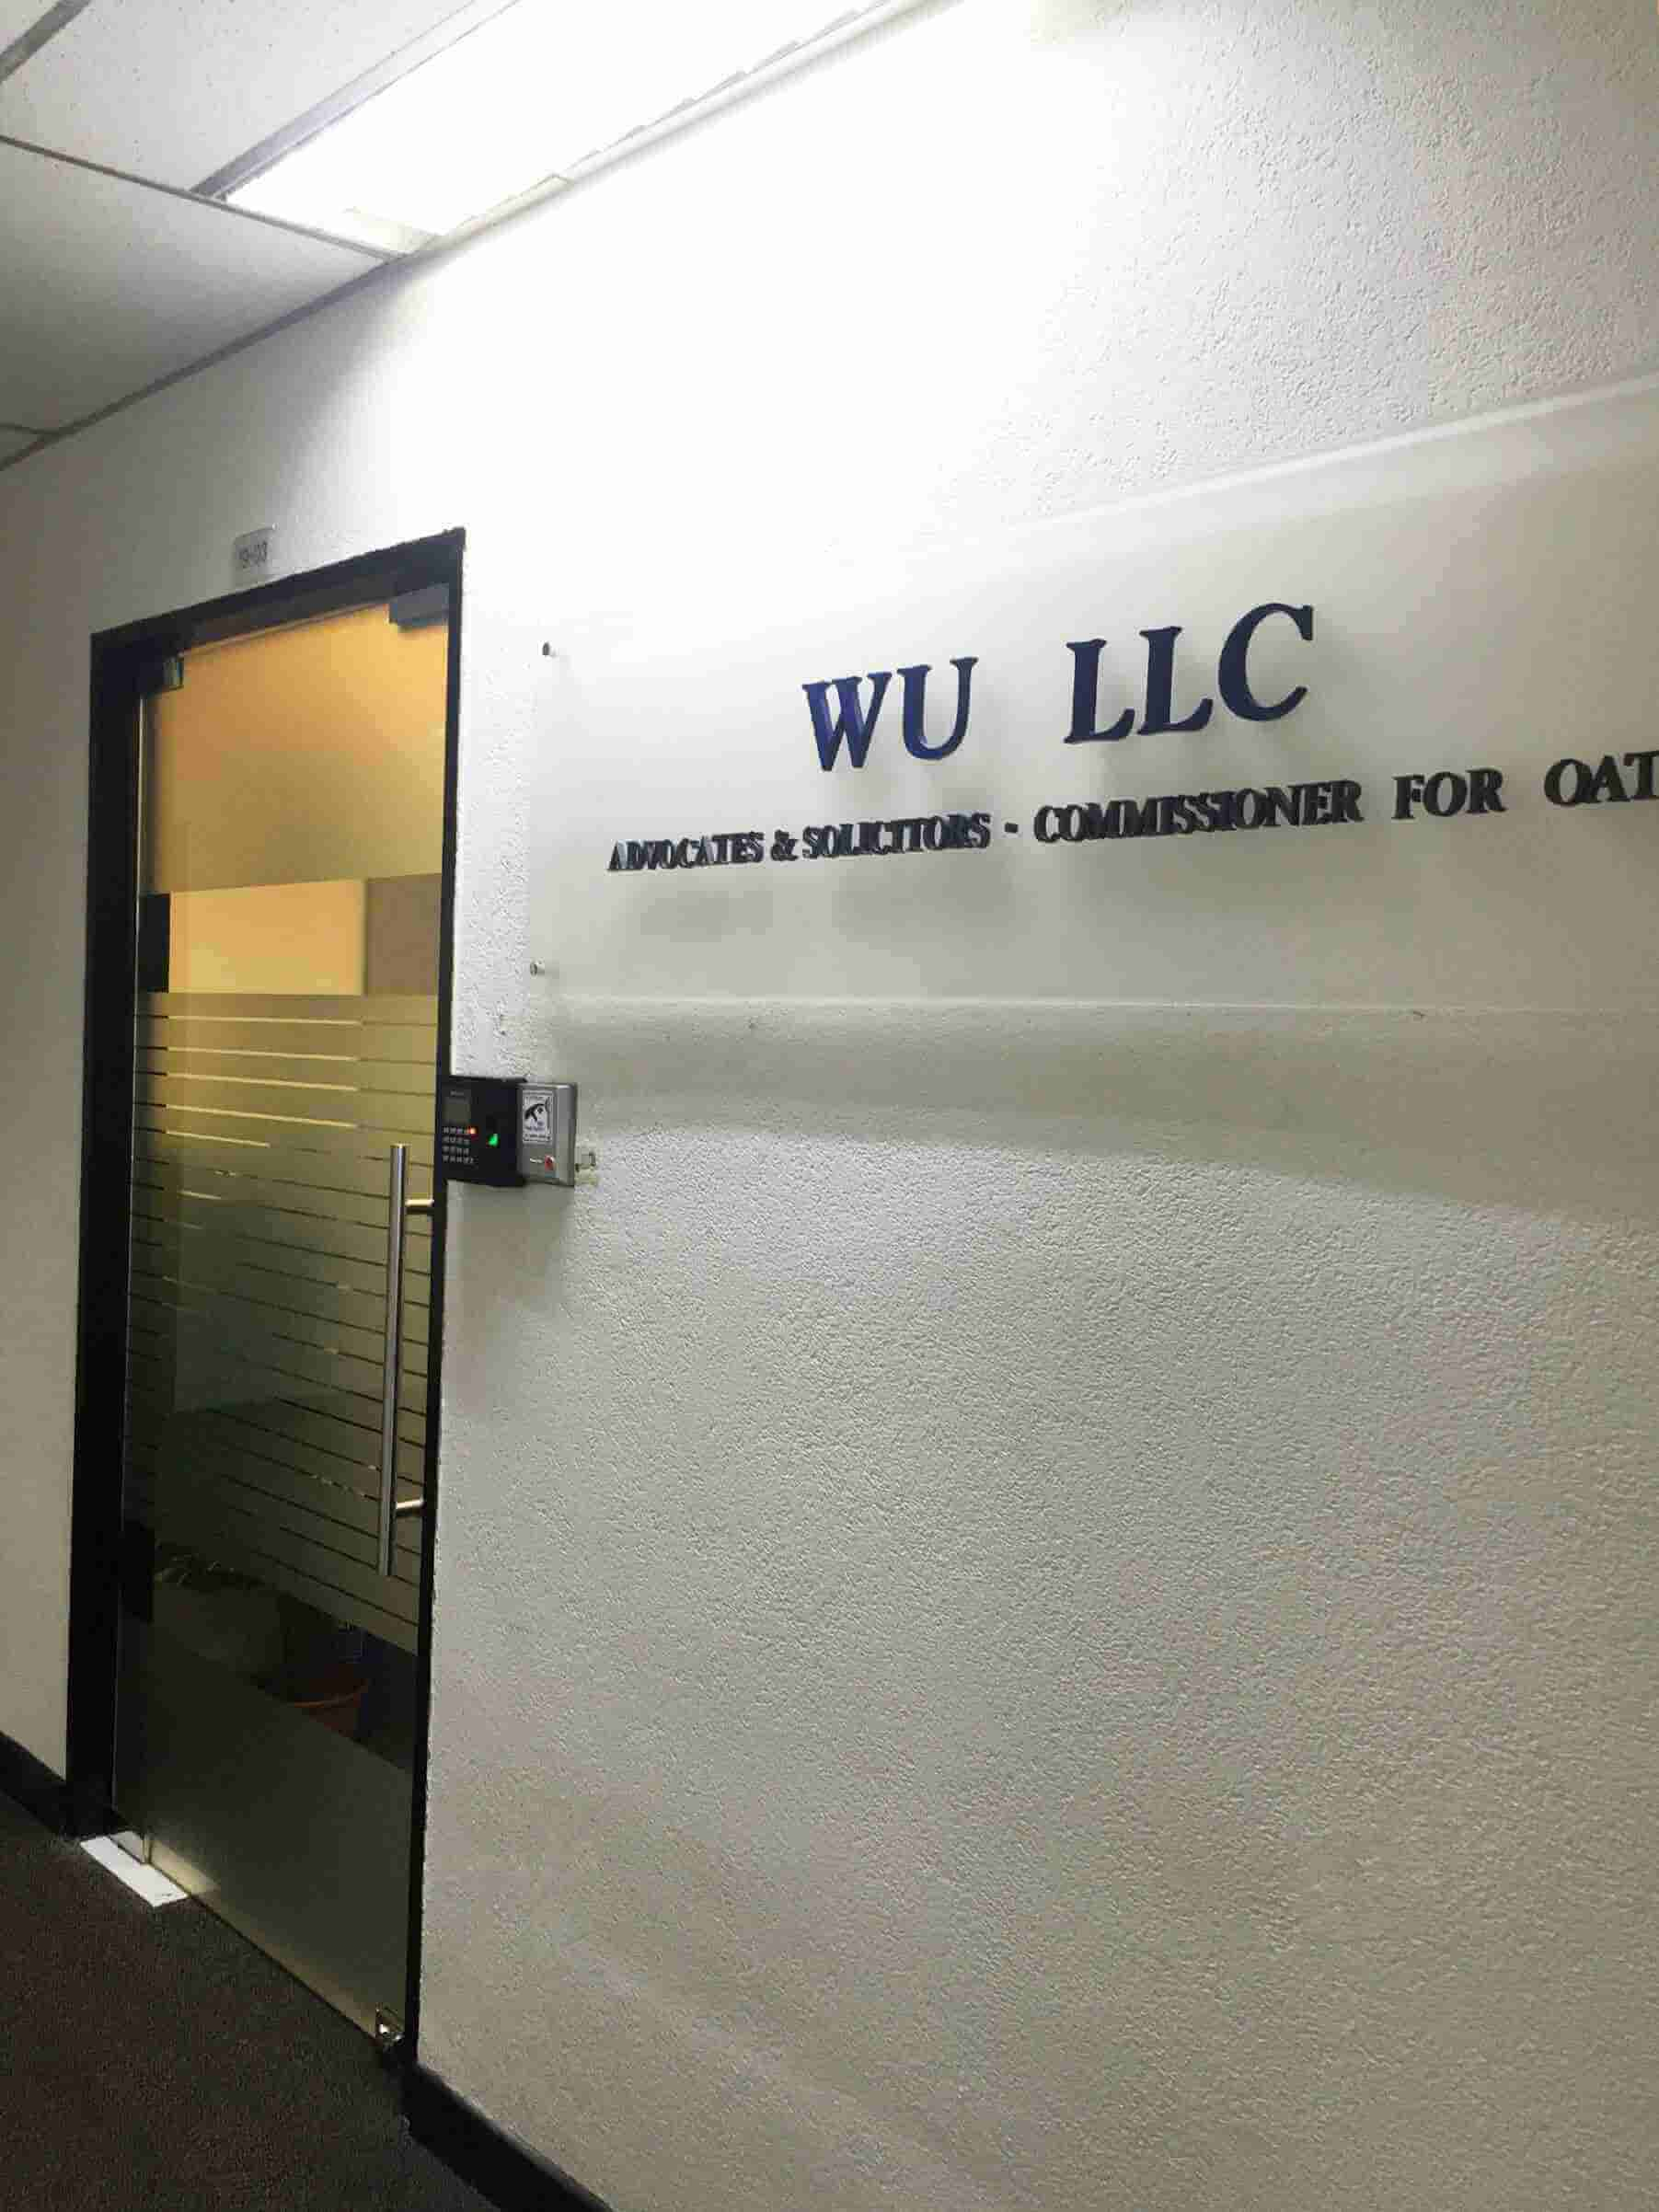 iLawyer, Wu LLC Advocates and Solicitors office